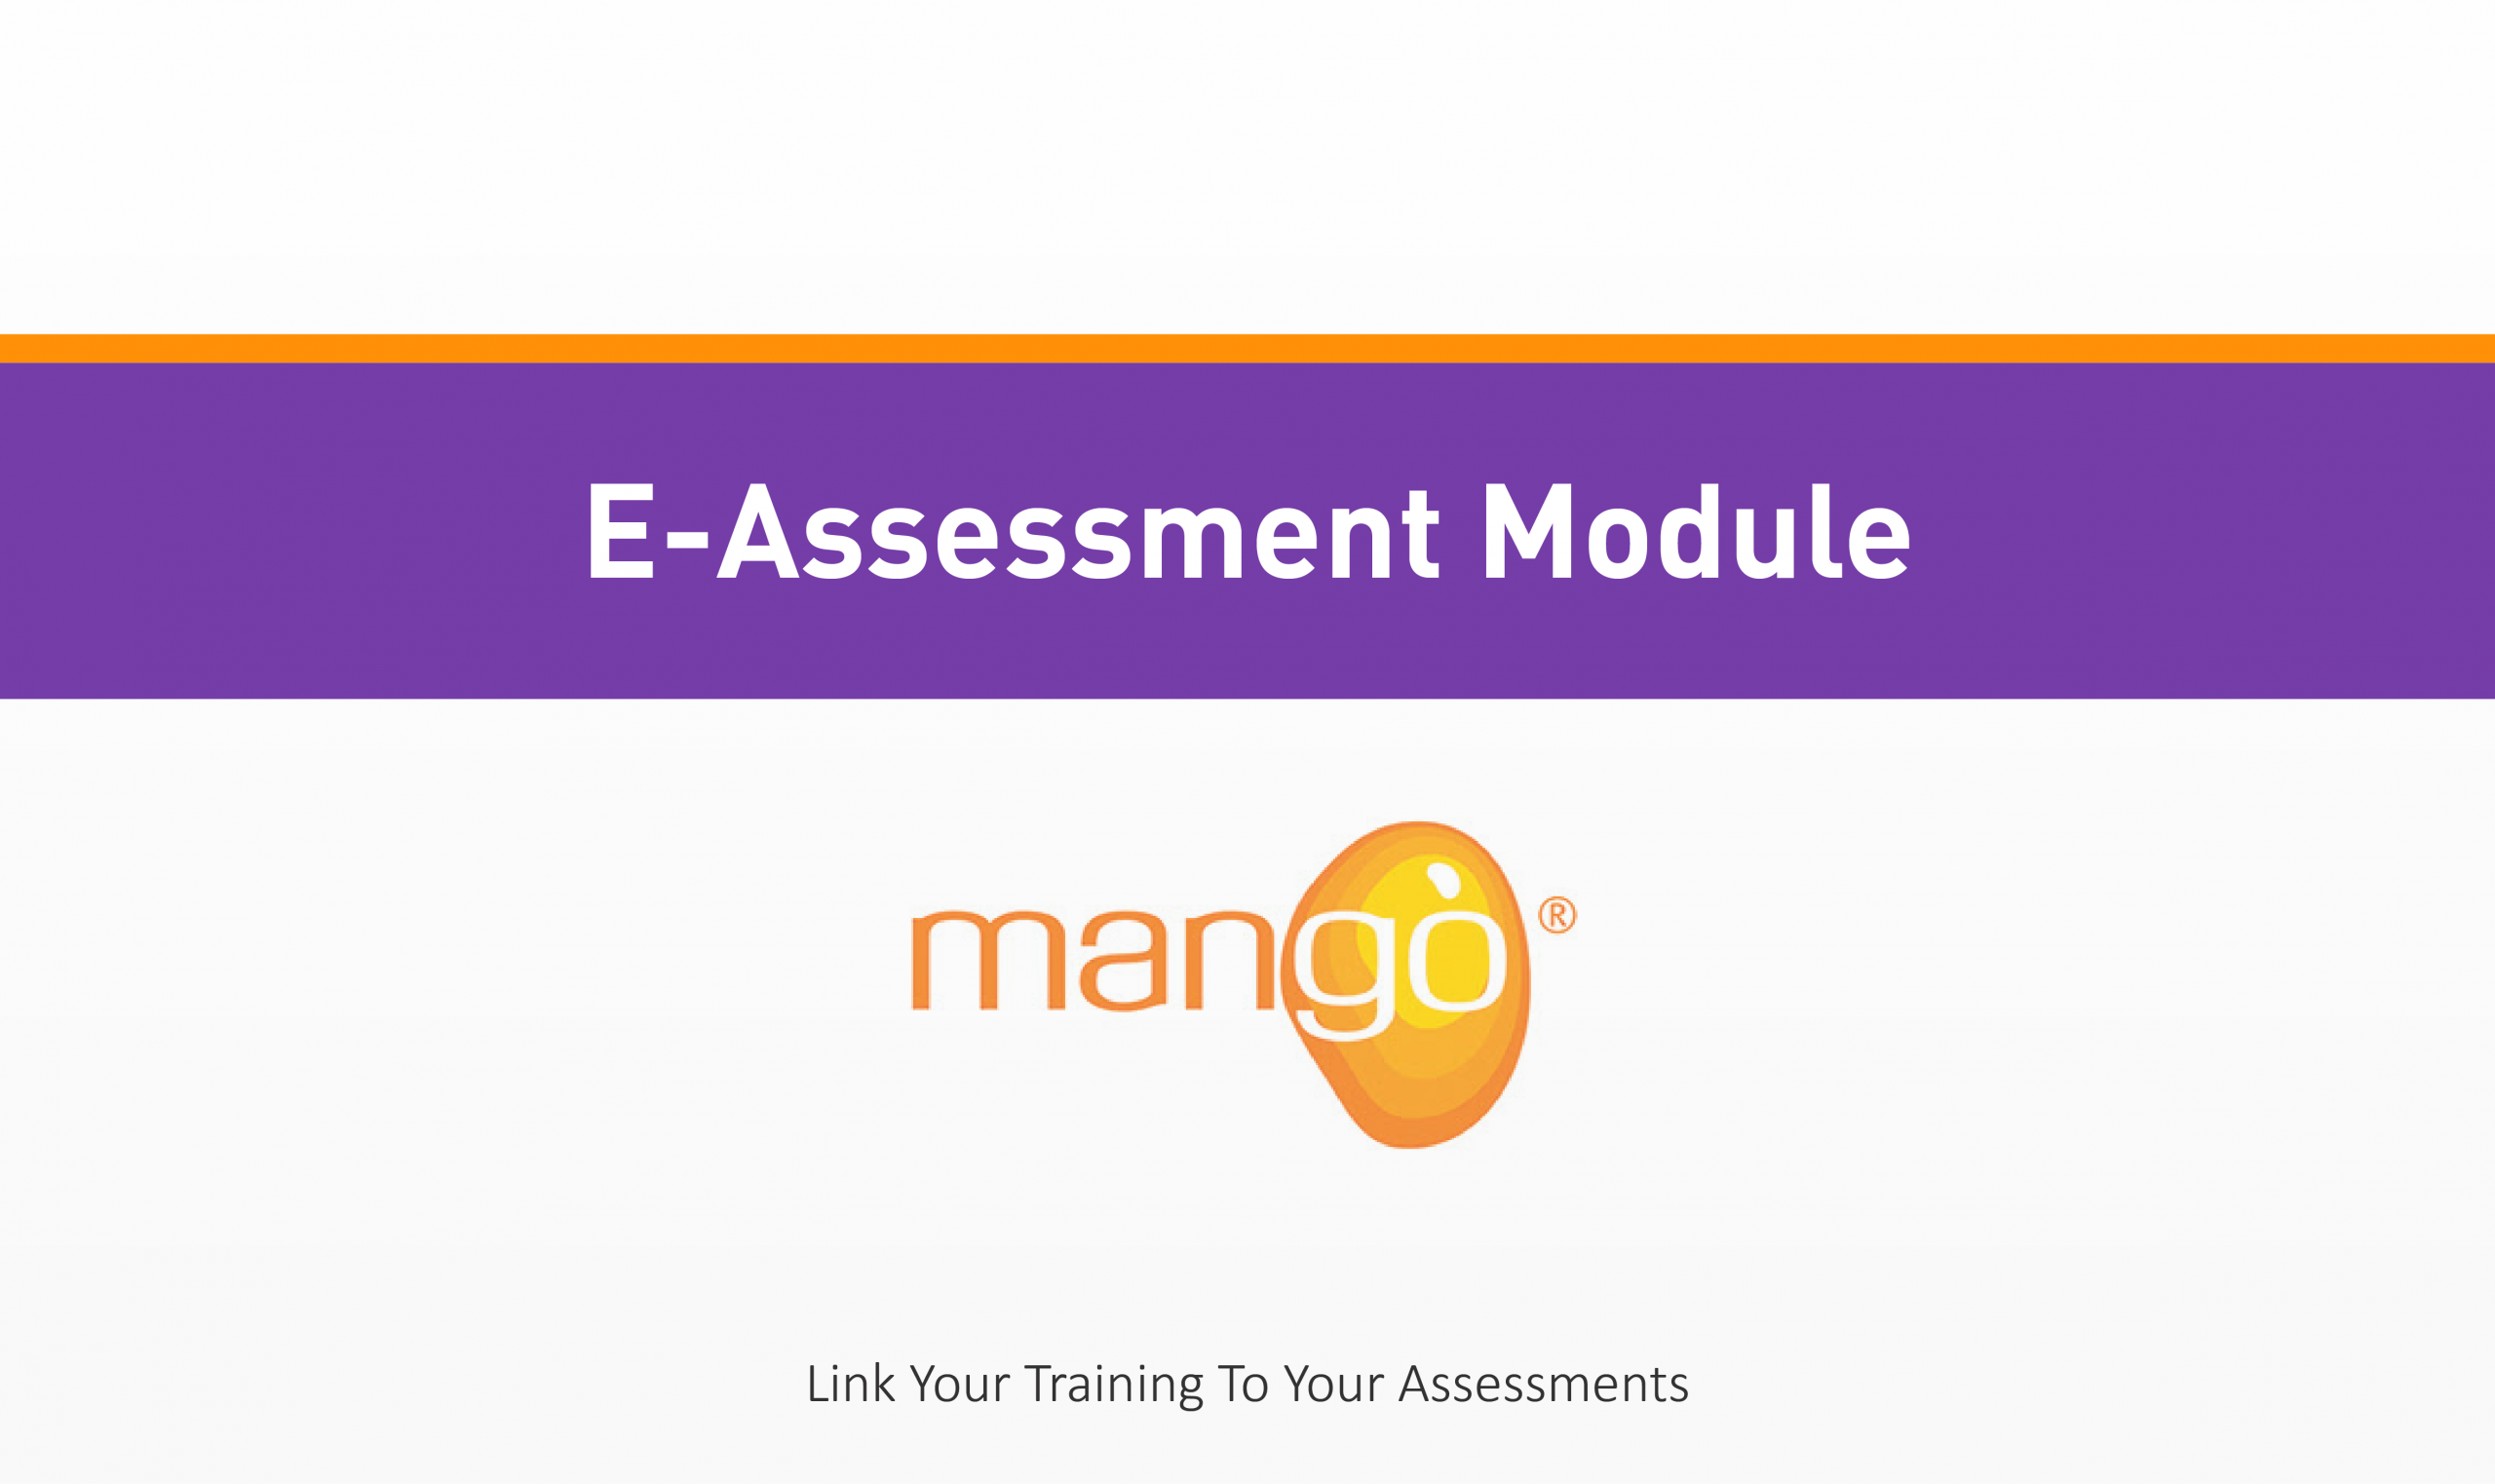 Quality Health Safety Environment Management Compliance Services Australia QHSE Consulting And Auditing Mango Compliance Software Solutions